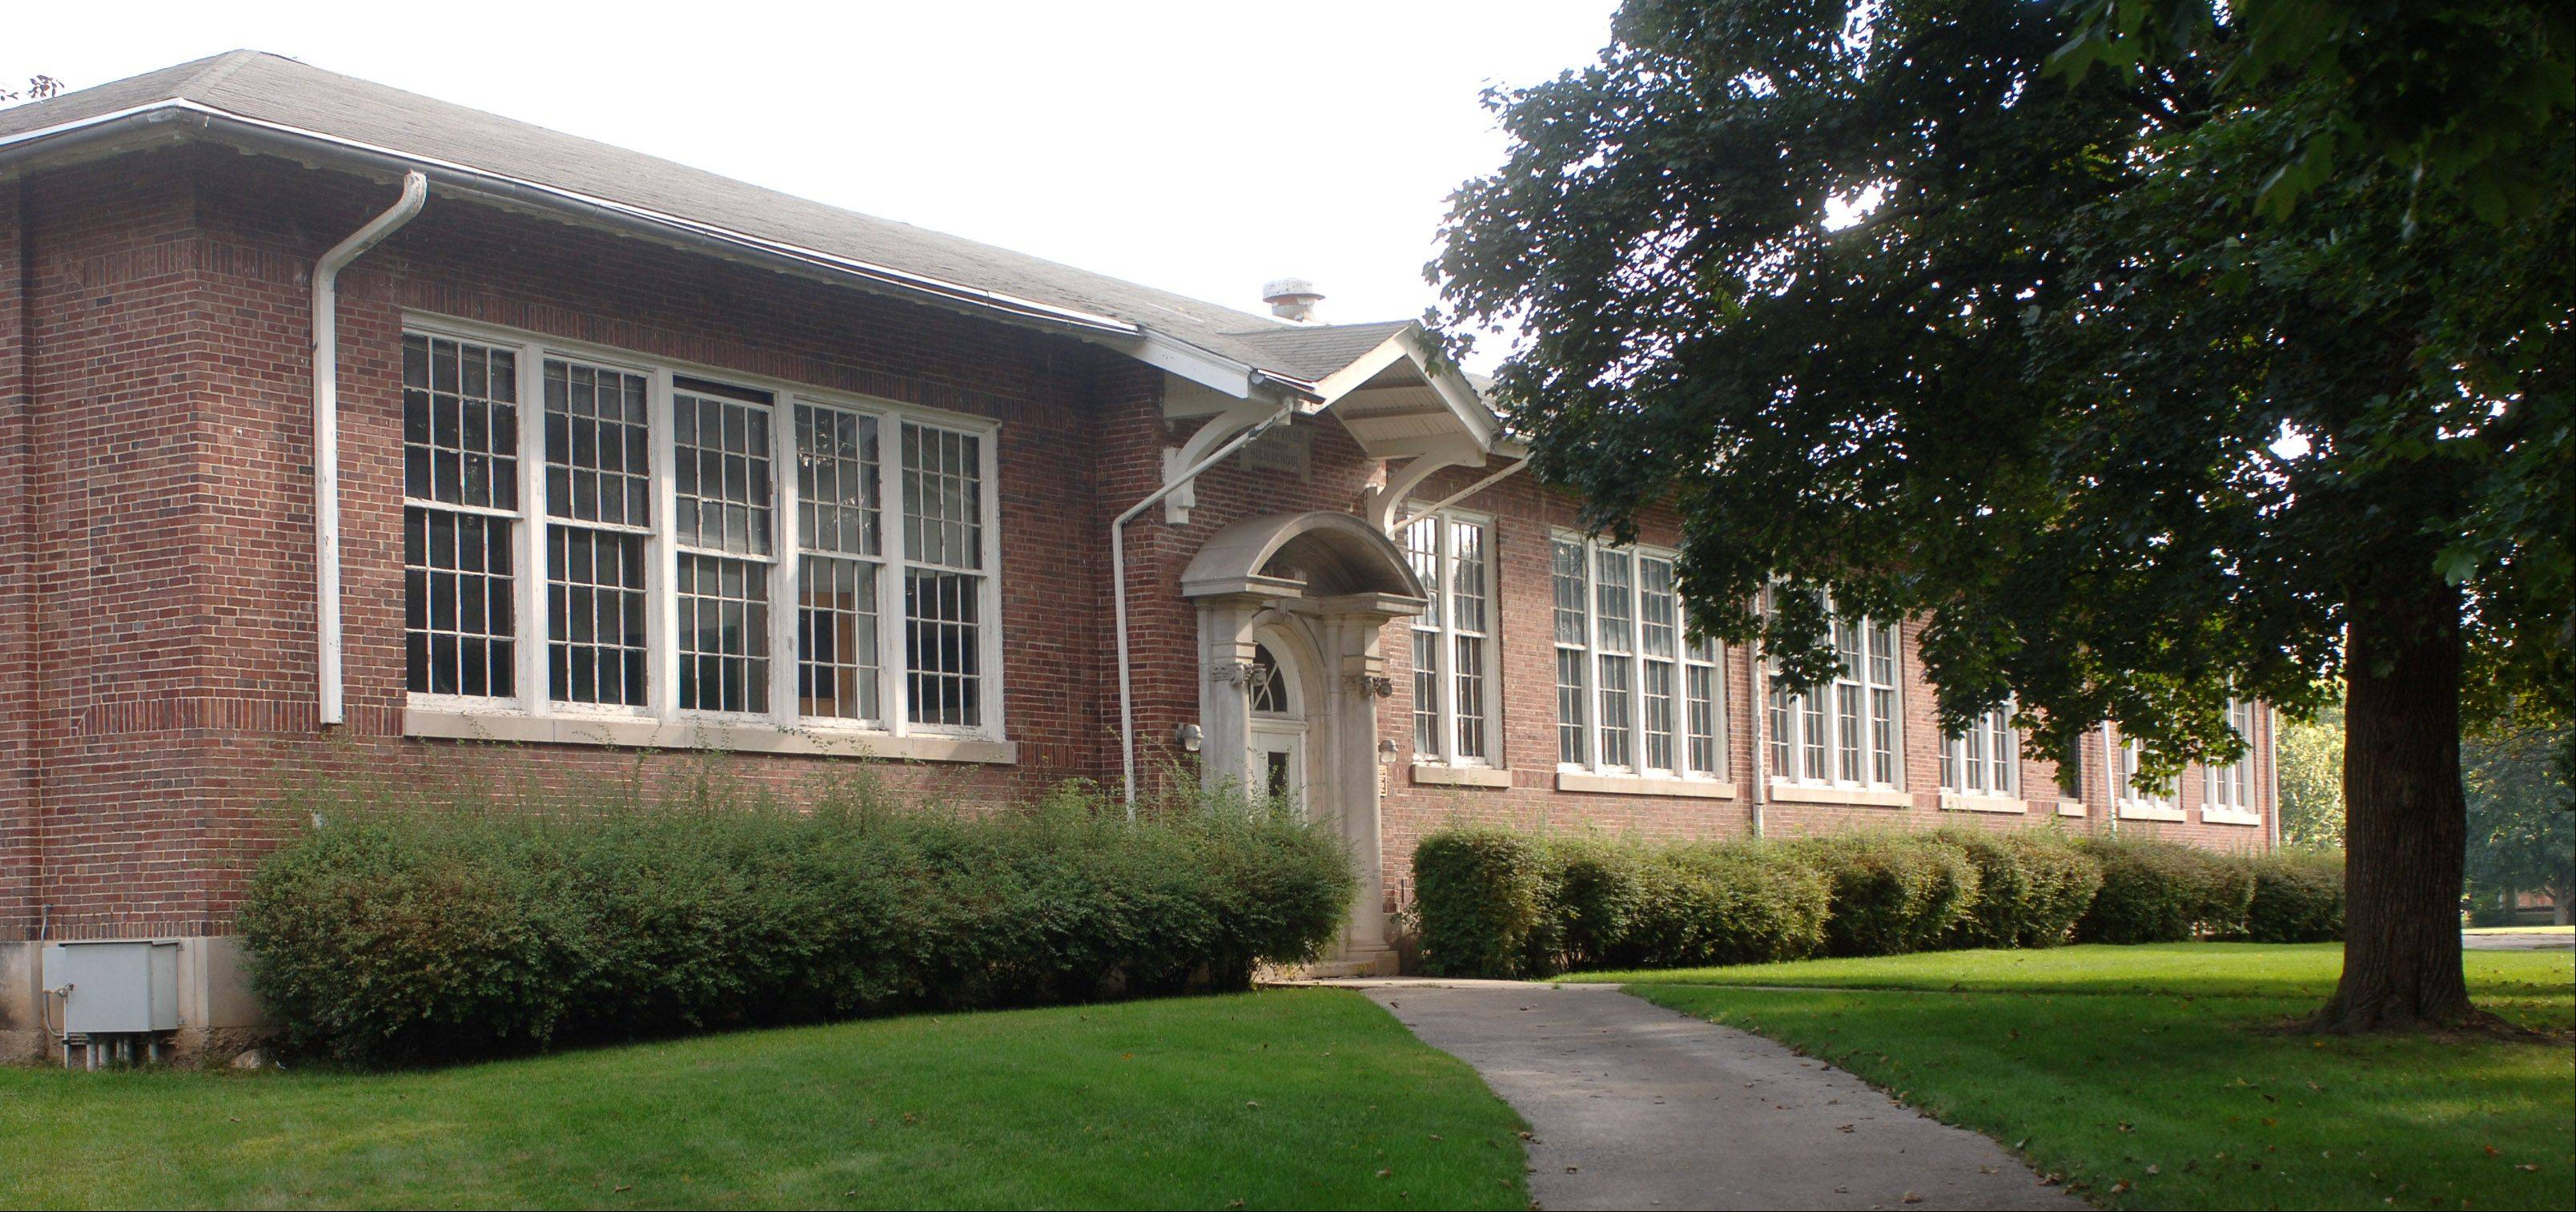 Libertyville is planning a binding referendum to determine the future of the Brainerd building. Voters will have to decide whether renovating the former school is worth paying more in property taxes.